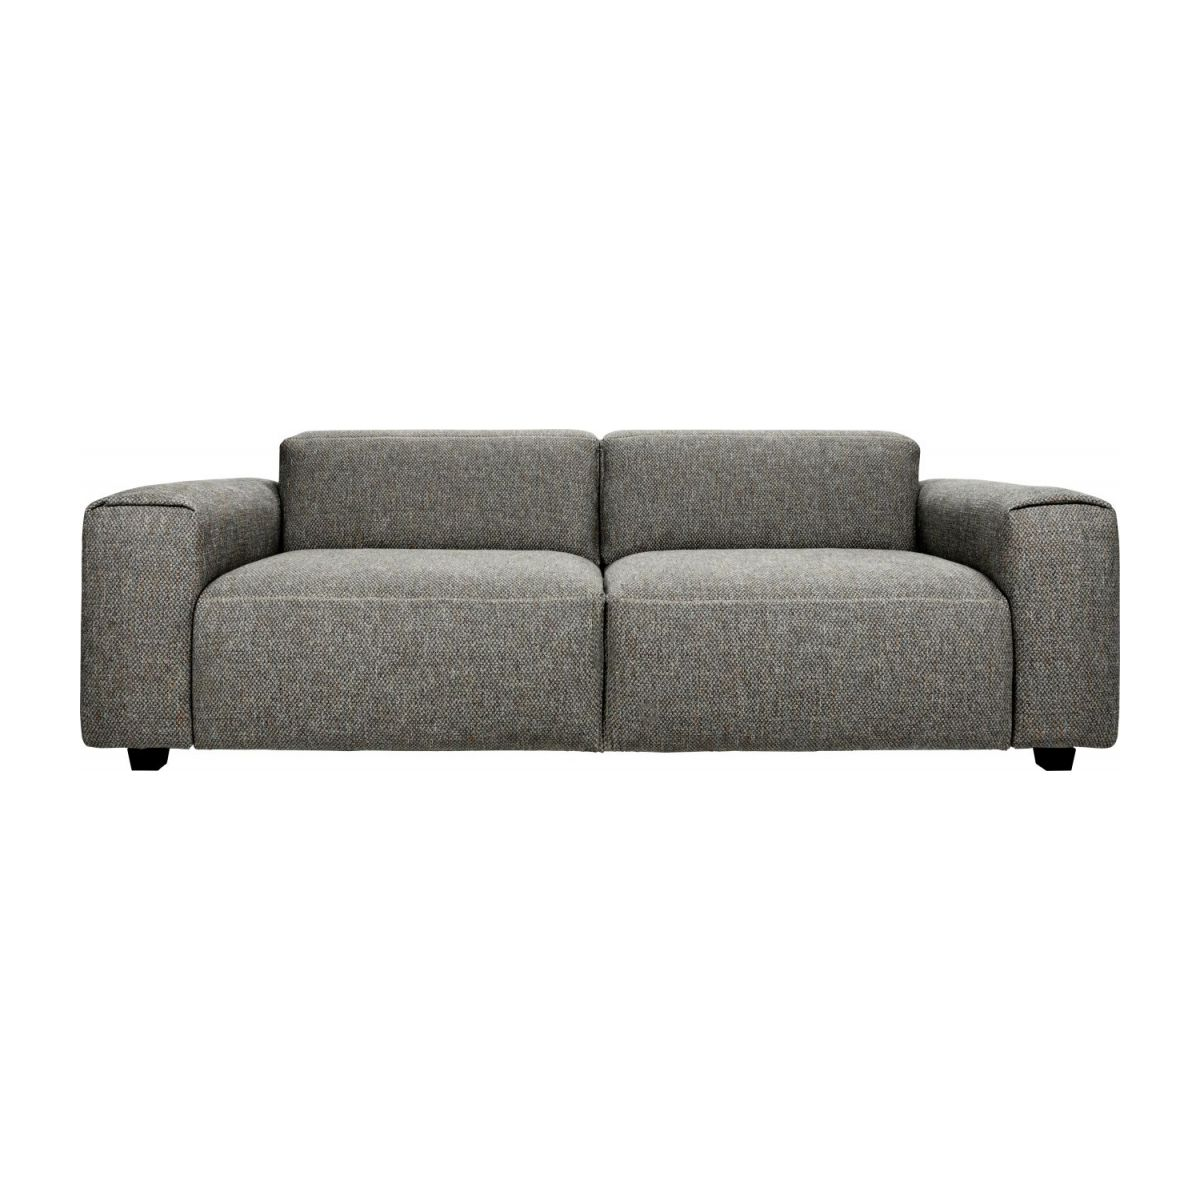 3 seater sofa in Bellagio fabric, night black n°4